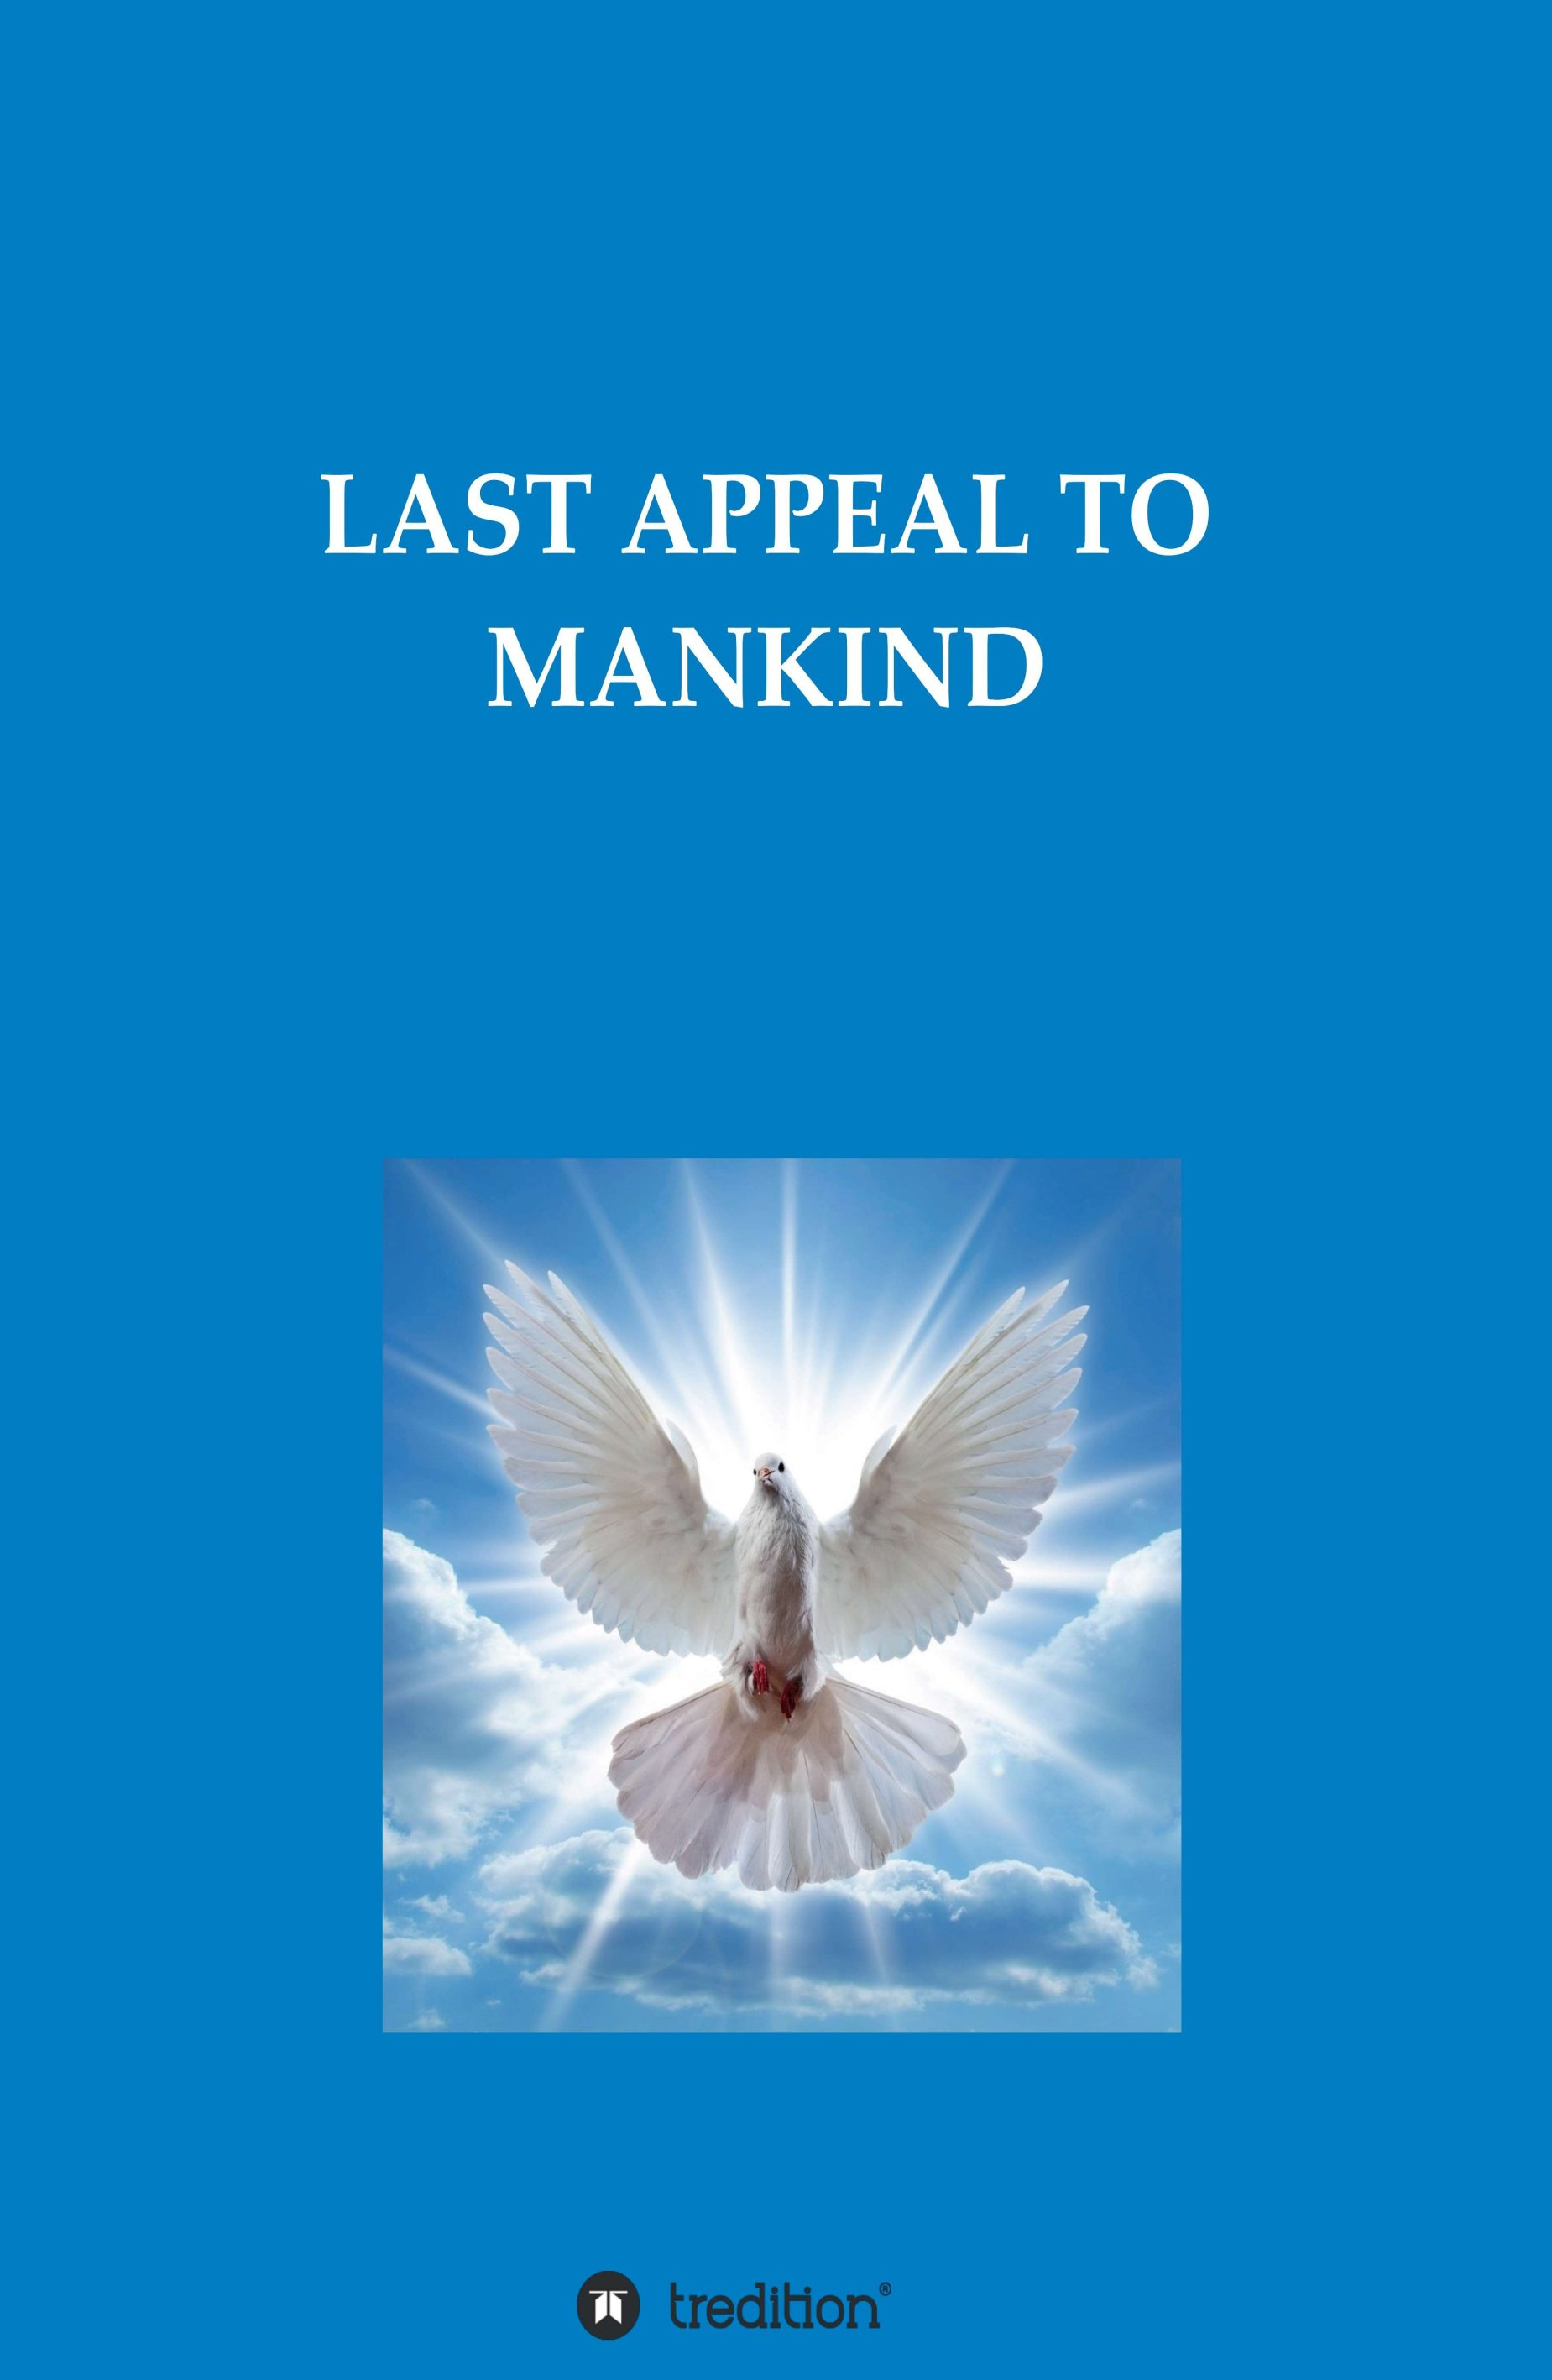 LAST APPEAL TO MANKIND - An urgent message from God